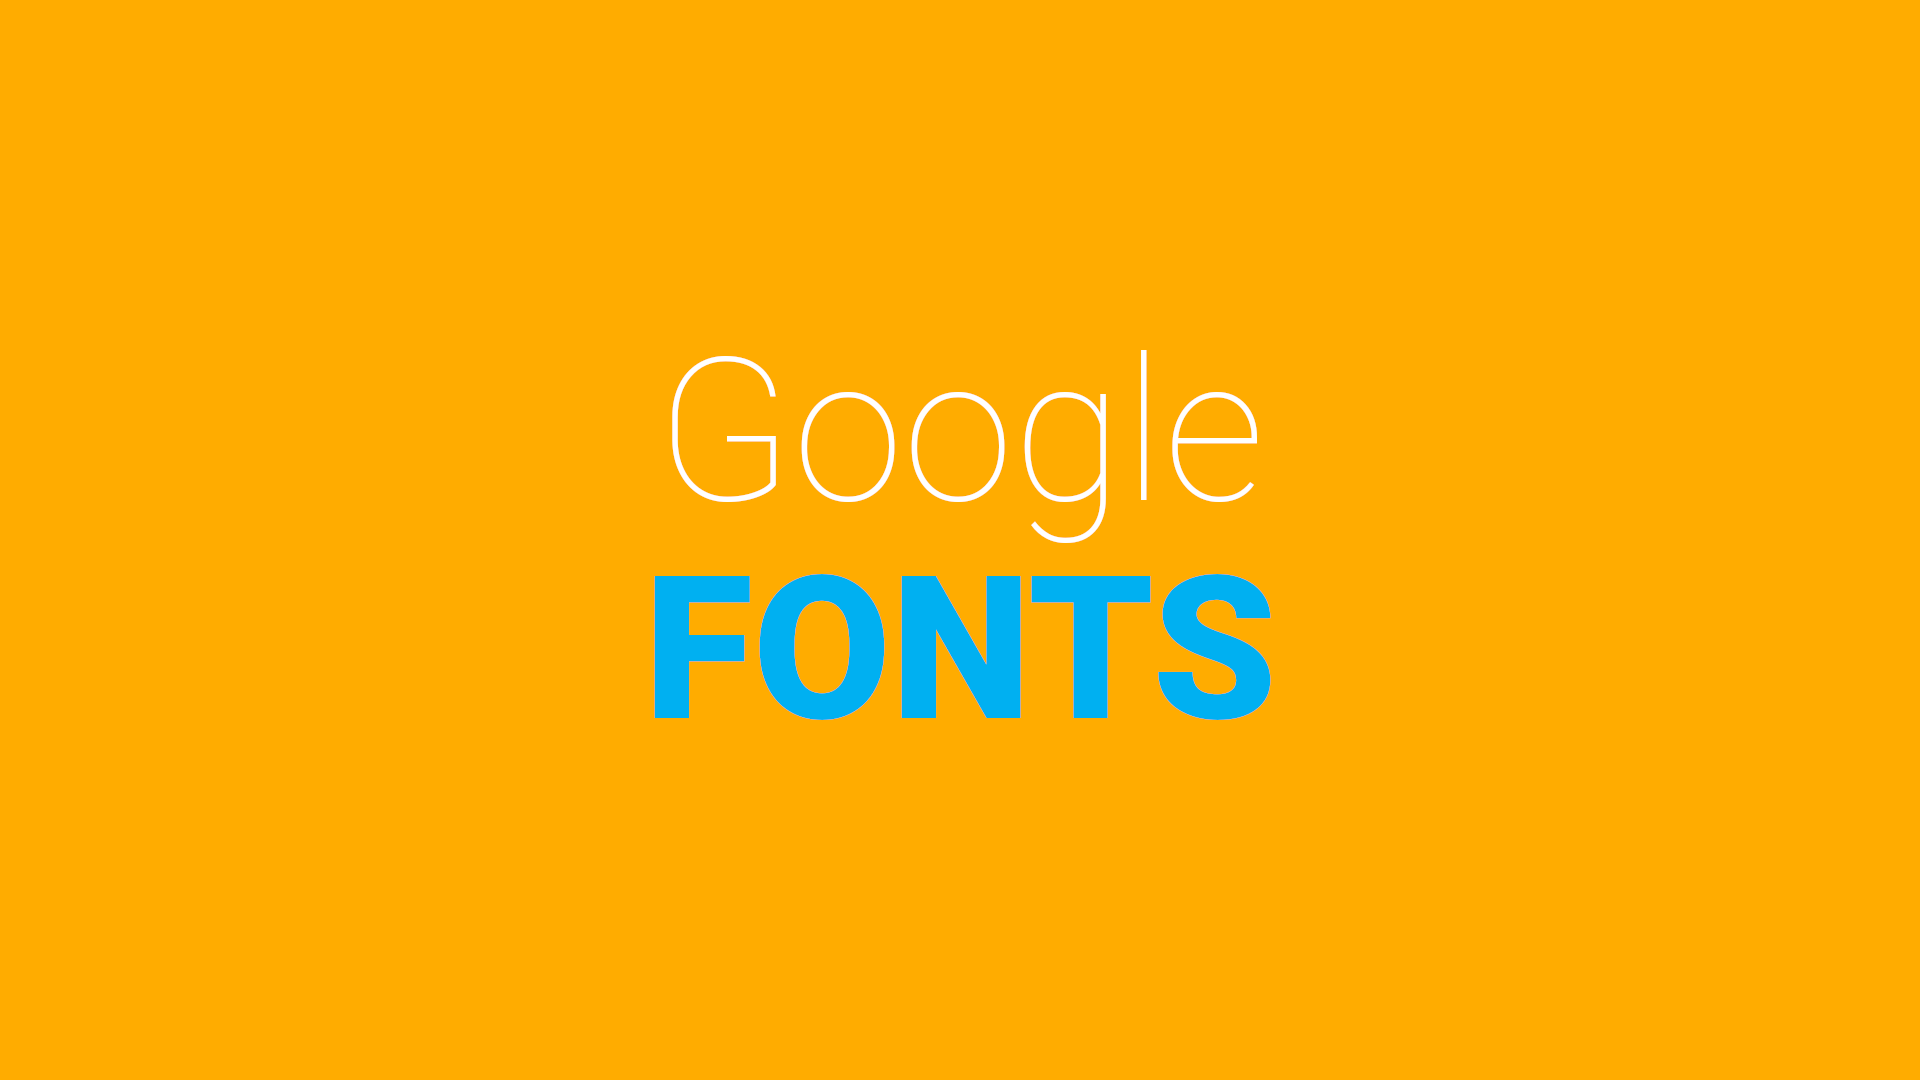 10 Google fonts for creative projects